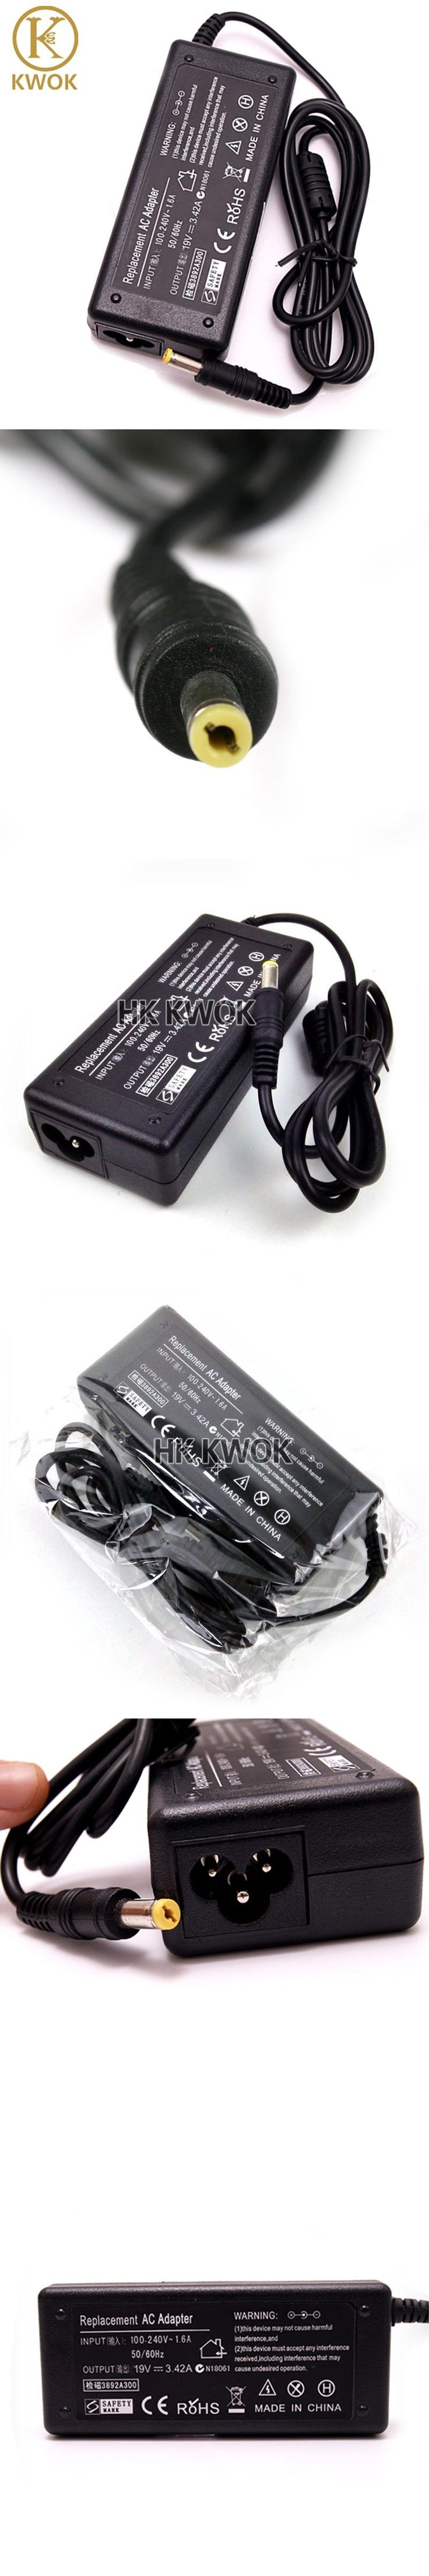 New 19V 3.42A 5.5x1.7mm AC Laptop Charger Adapter For Acer Aspire 5315 5735 5920 5535 5738 6920 7520 SADP-65KB Pa-1650-02 1690